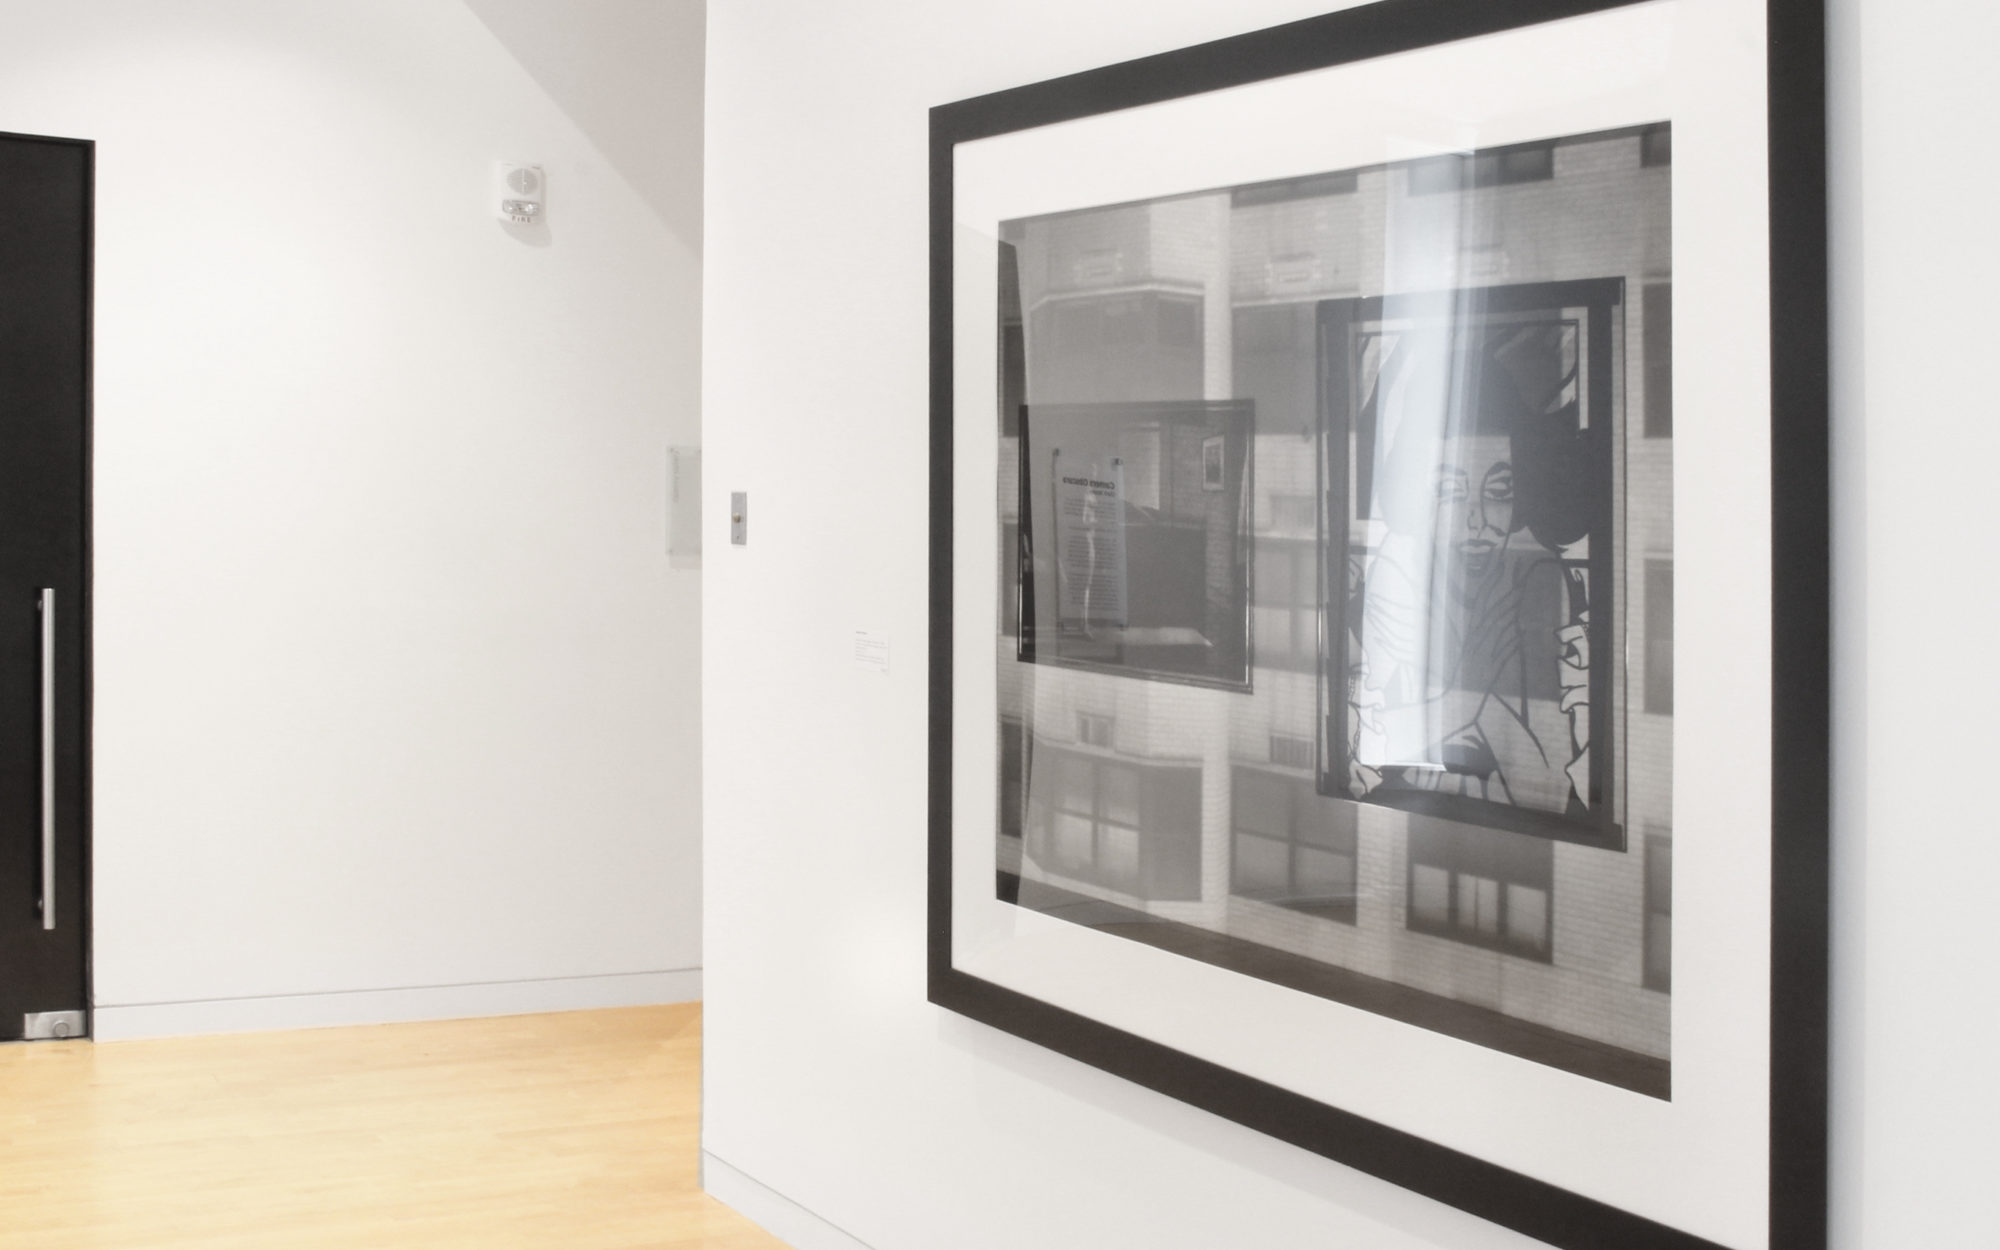 Large photograph on gallery wall